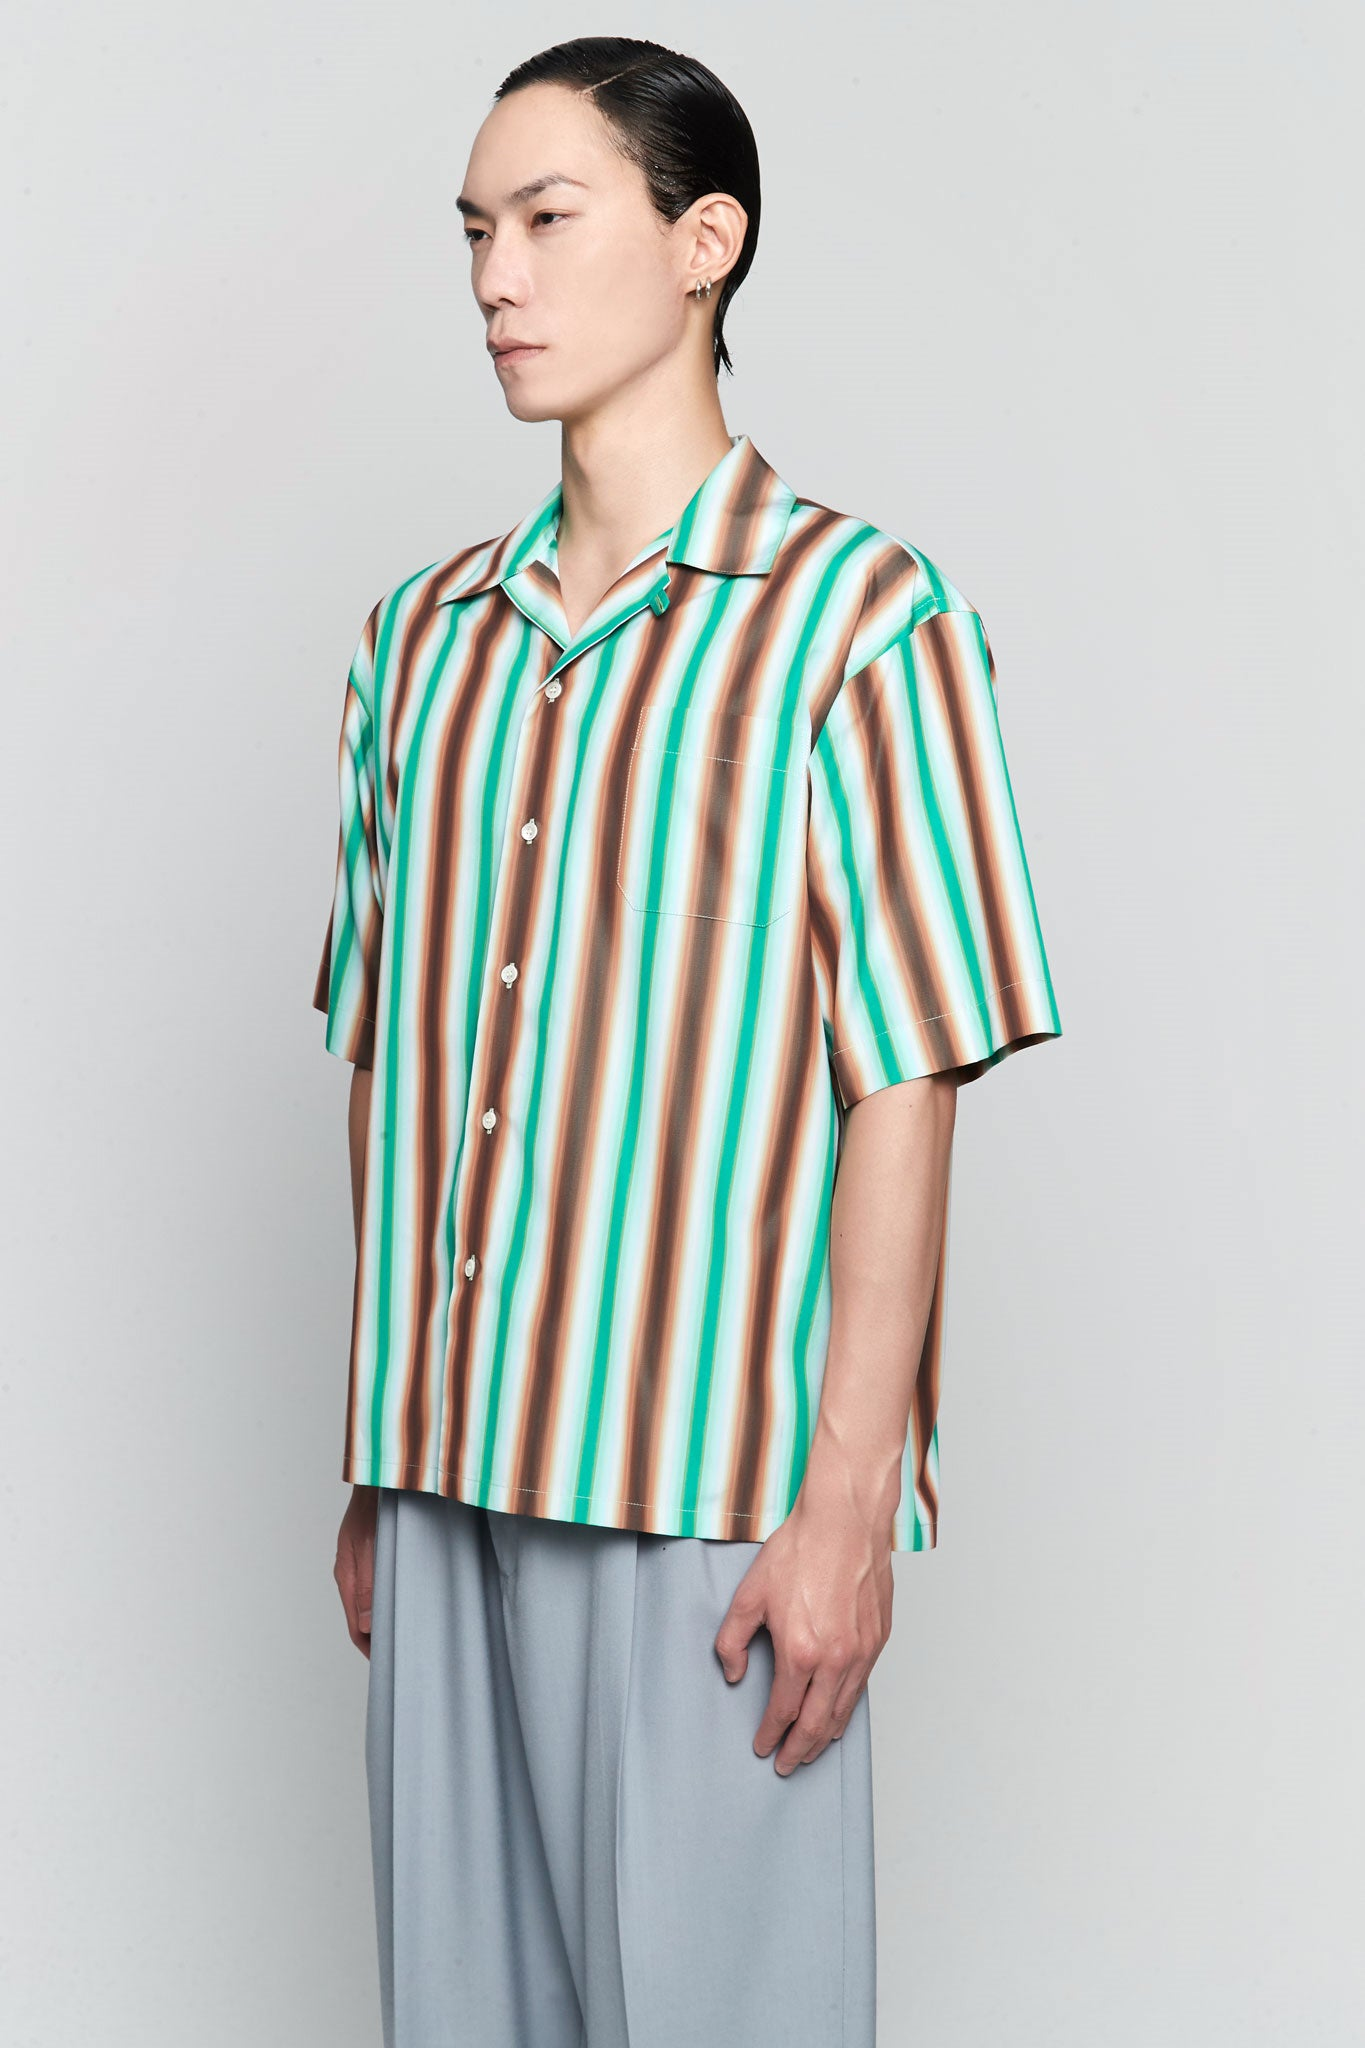 Degrade Stripe S/S Shirt Green/Brown